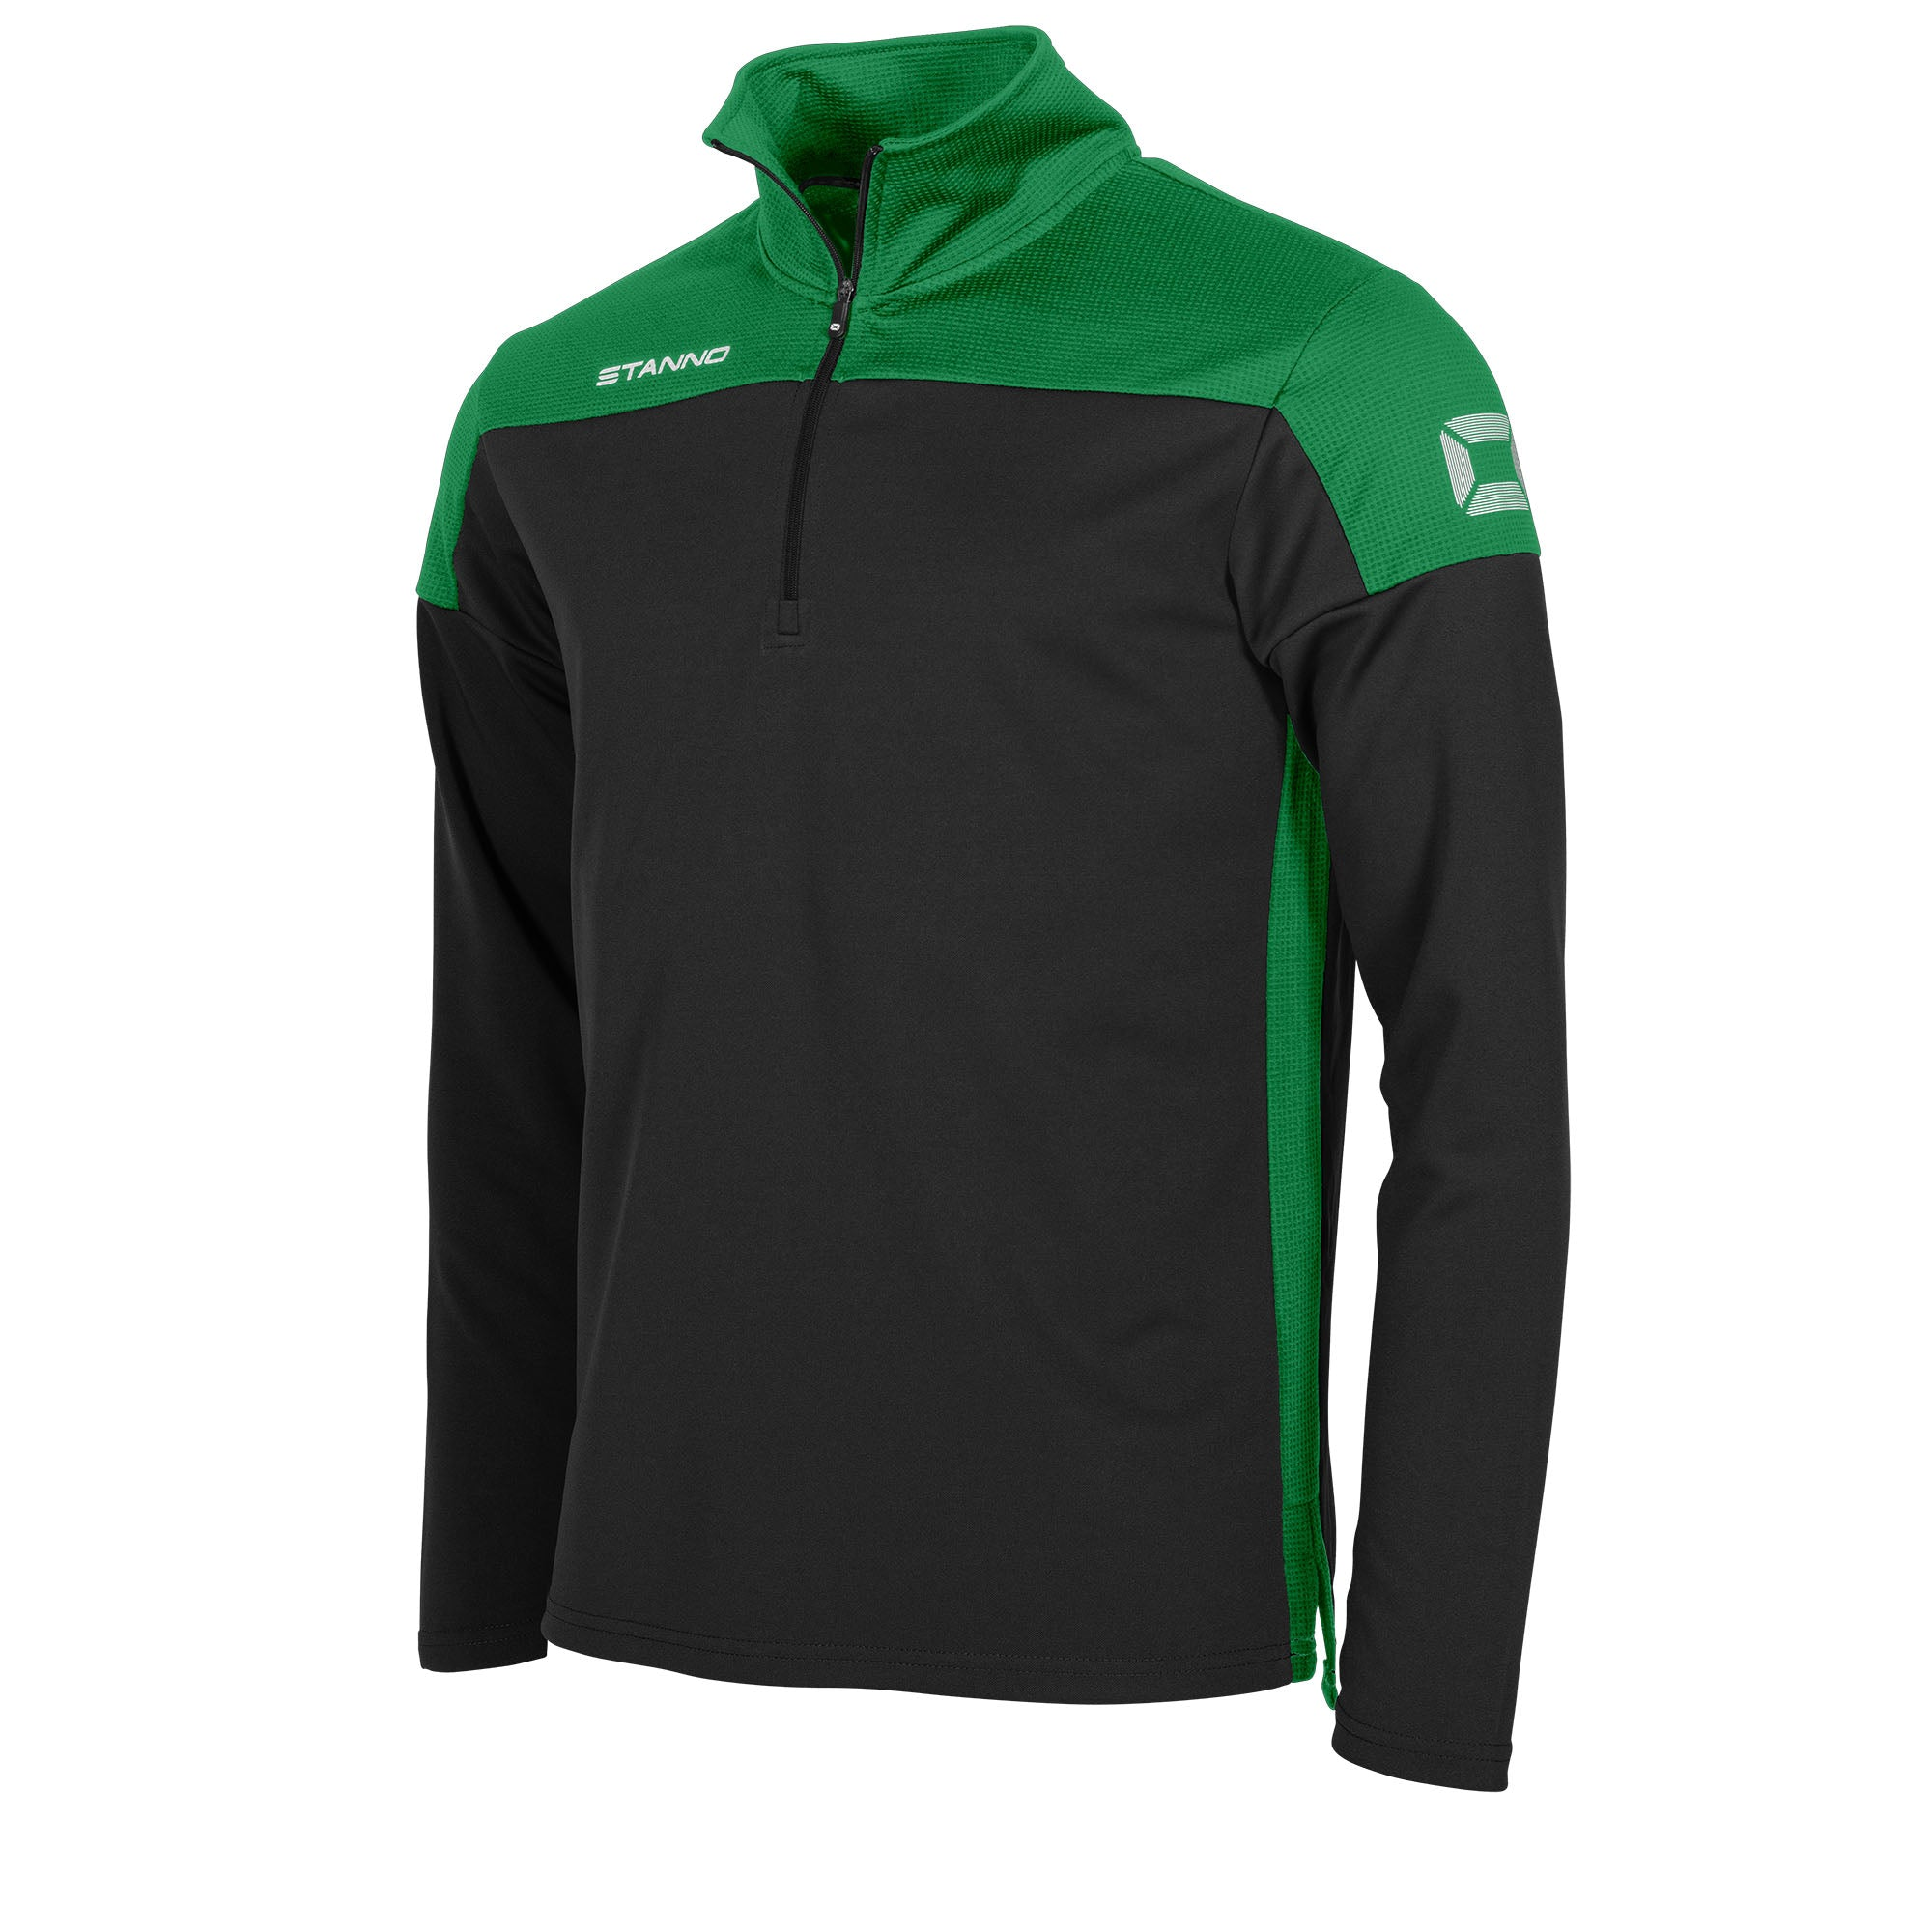 Stanno Pride Training 1/4 Zip in black with green contrast shoulder and side panel